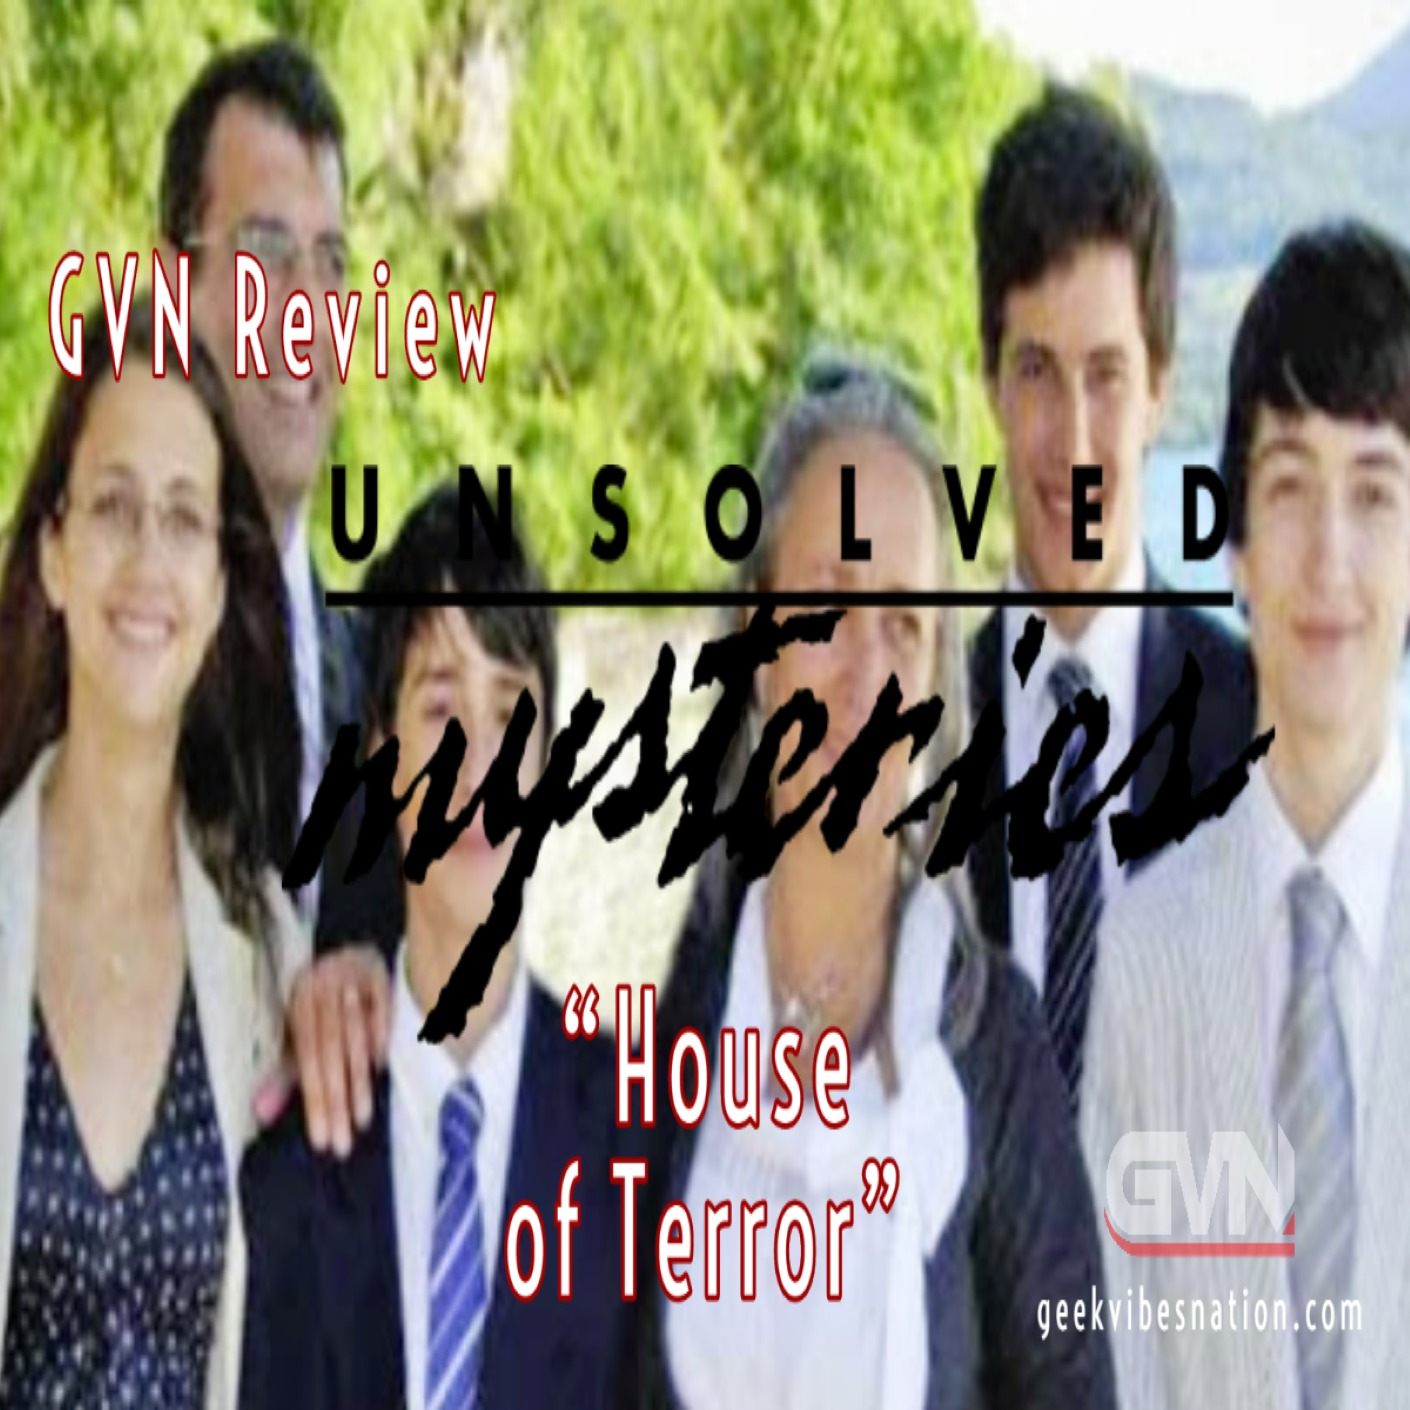 GVN Review: Unsolved Mysteries - House of Terror